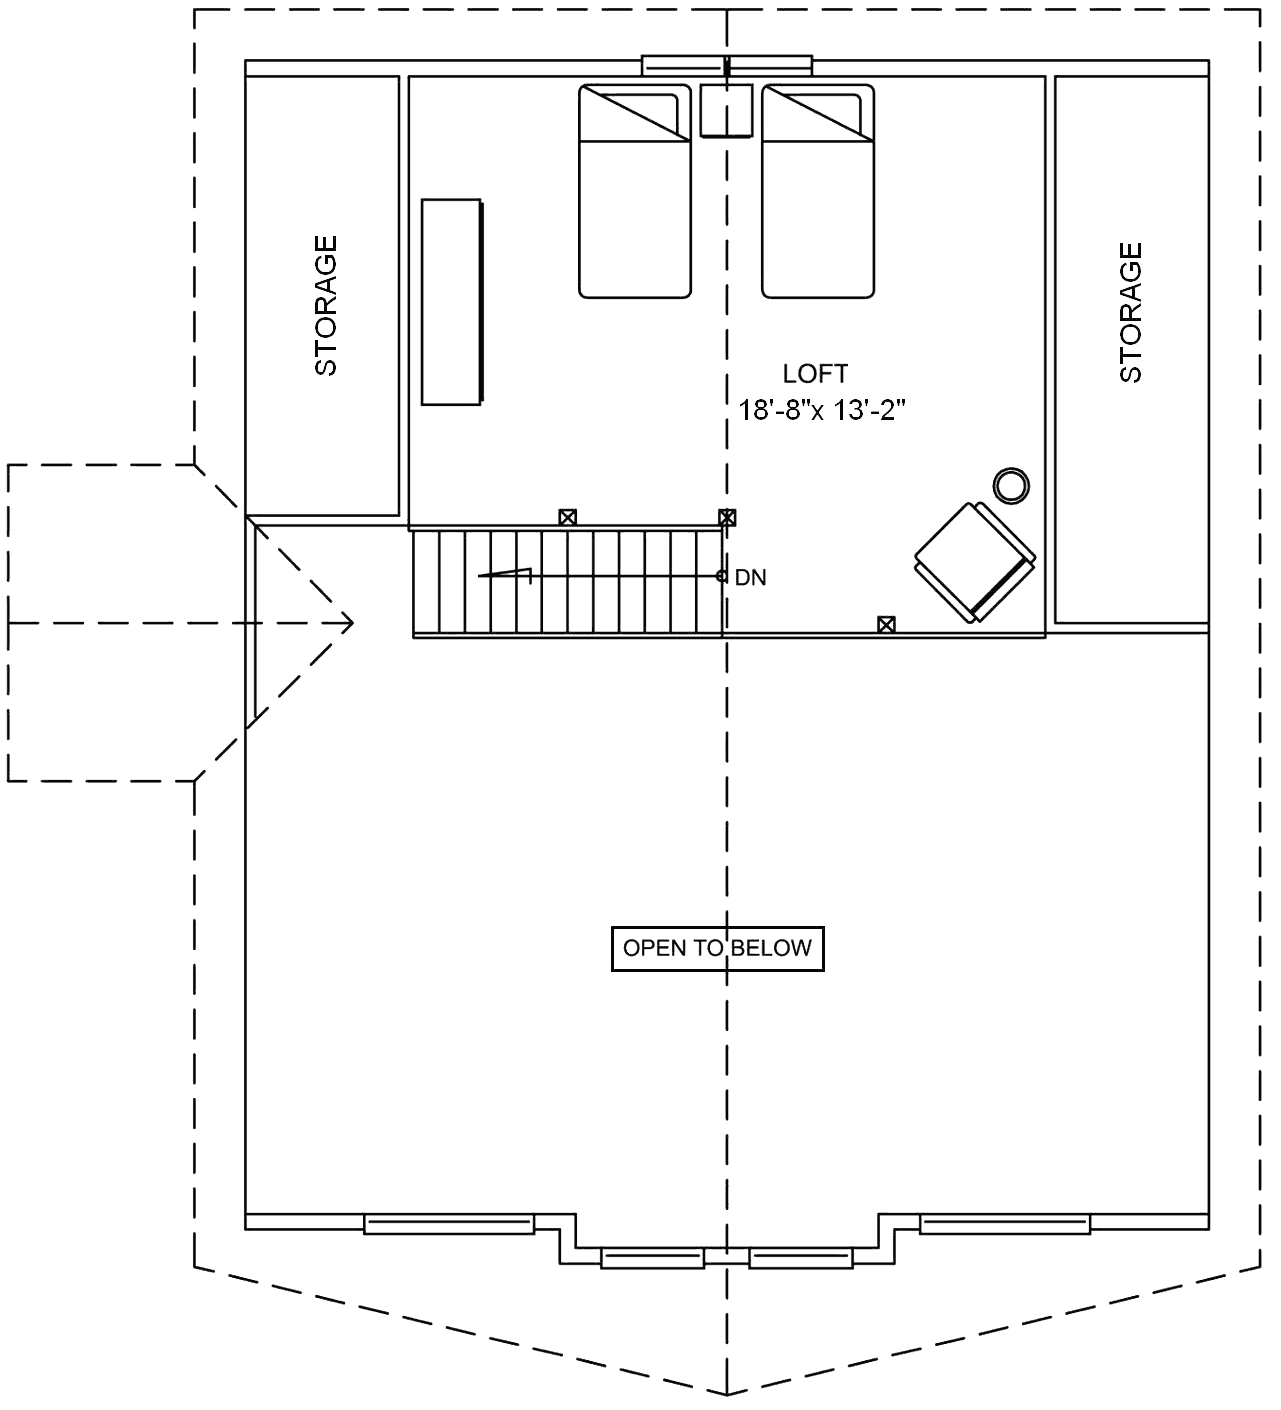 <strong>Loft: 293 square feet (27.22 m²)</strong>